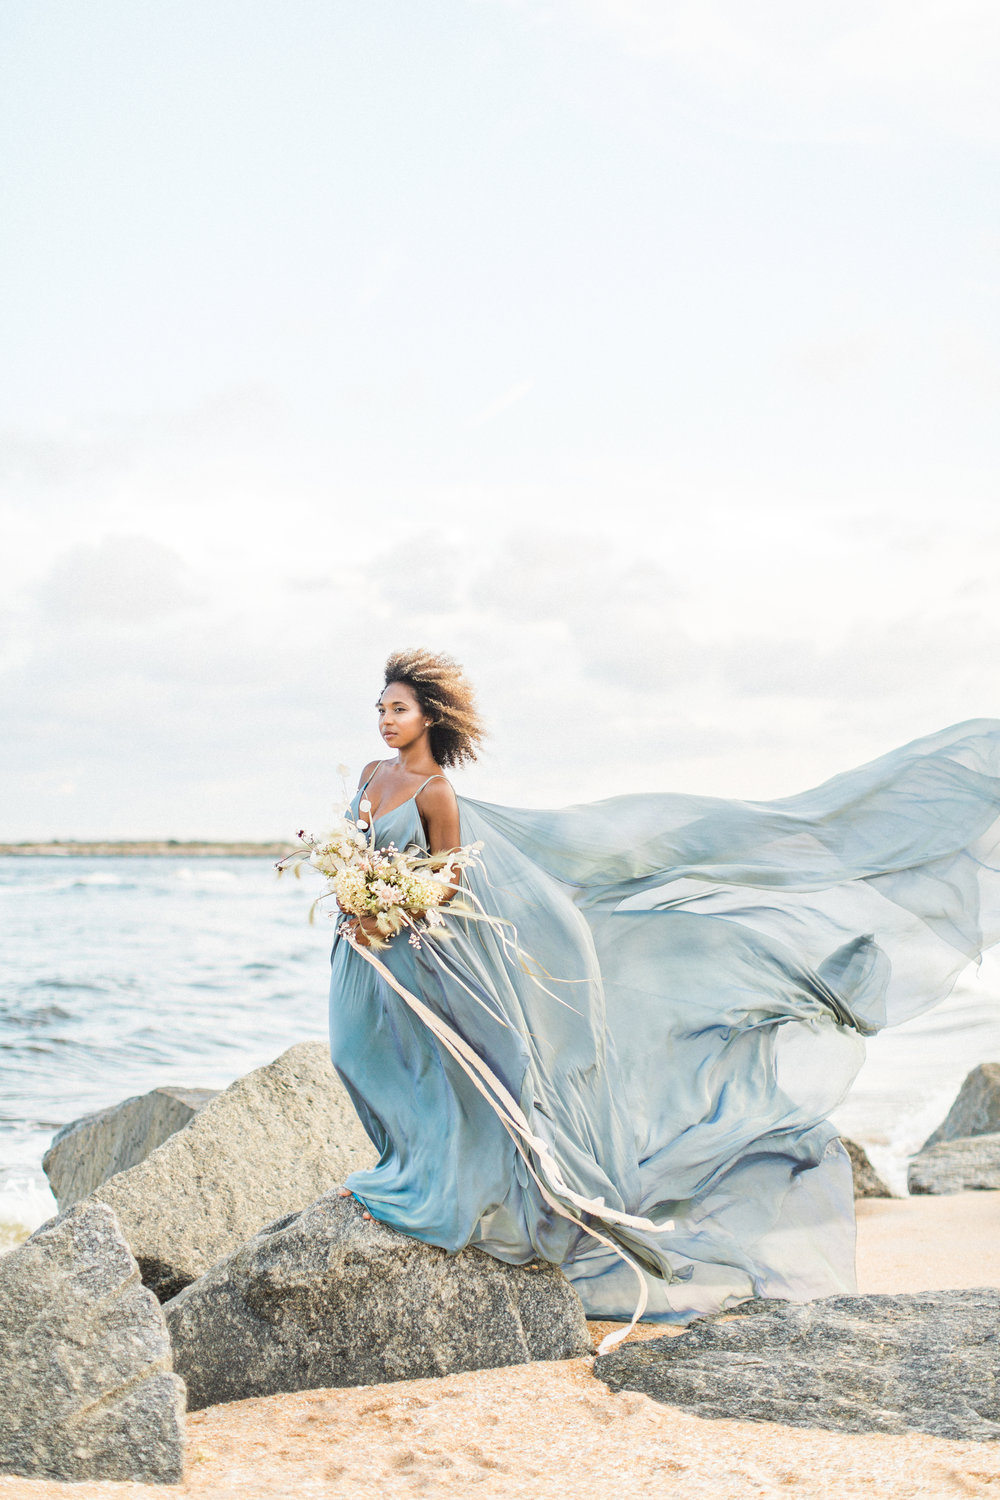 Blue wedding gown beach wedding nonconventional bride043.jpg